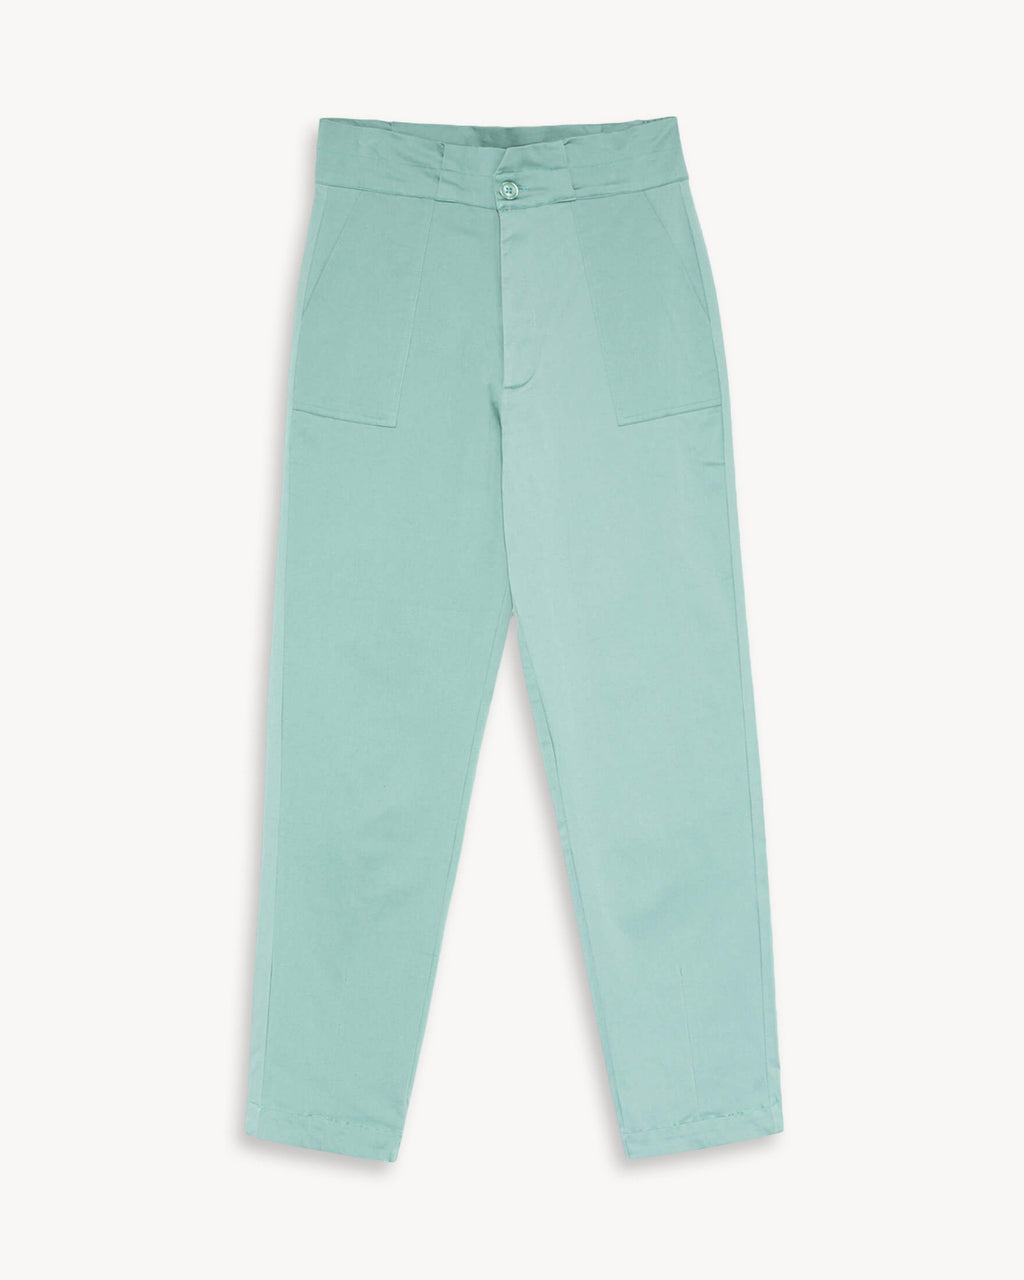 variant_1 | EN Satin trouser pants Women| DE Satin Hose Damen